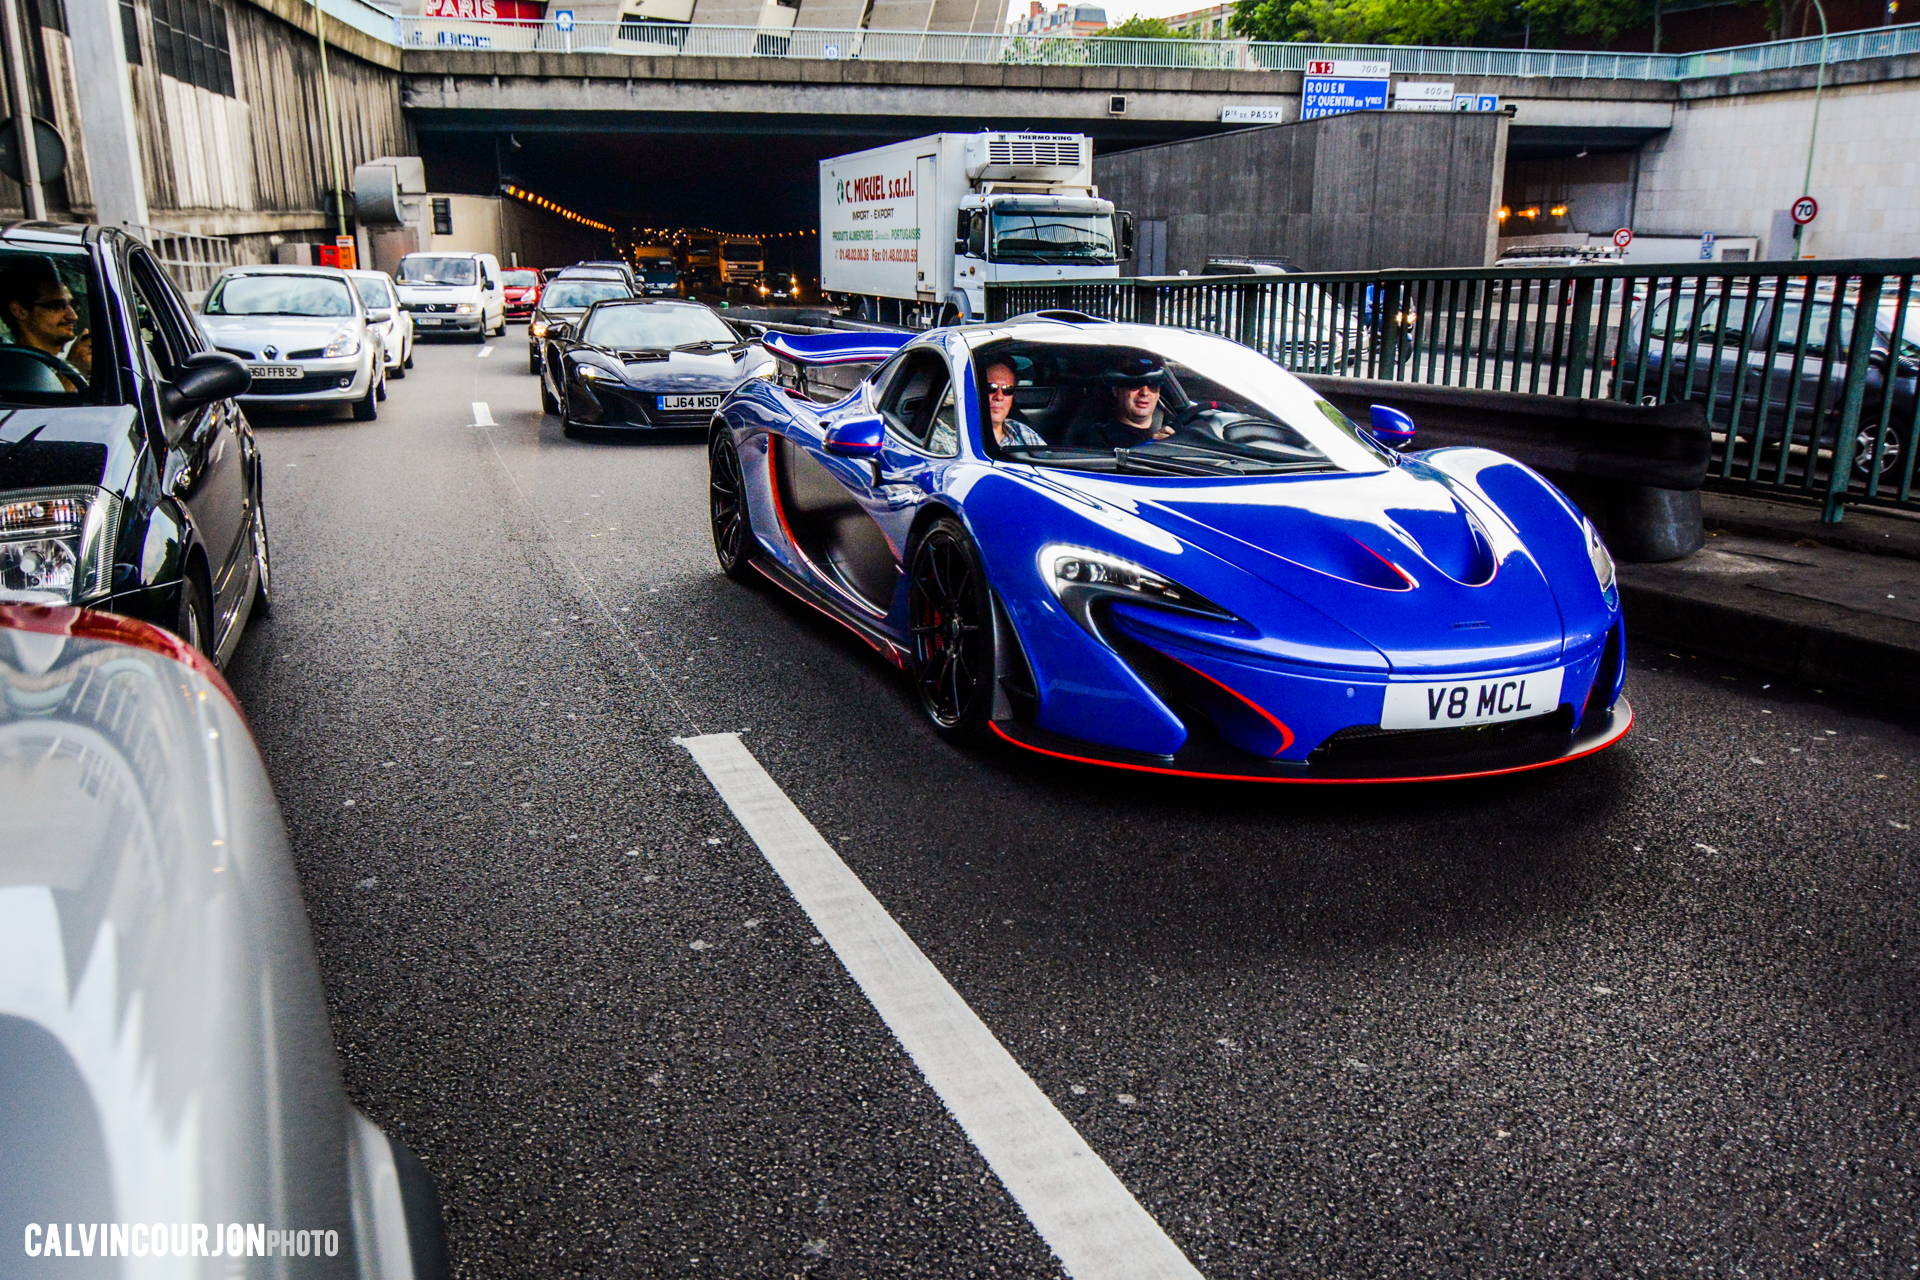 McLaren P1 - Blue by MSO - McLaren95 parade - road to Le Mans - 2015 - photo Calvin Courjon